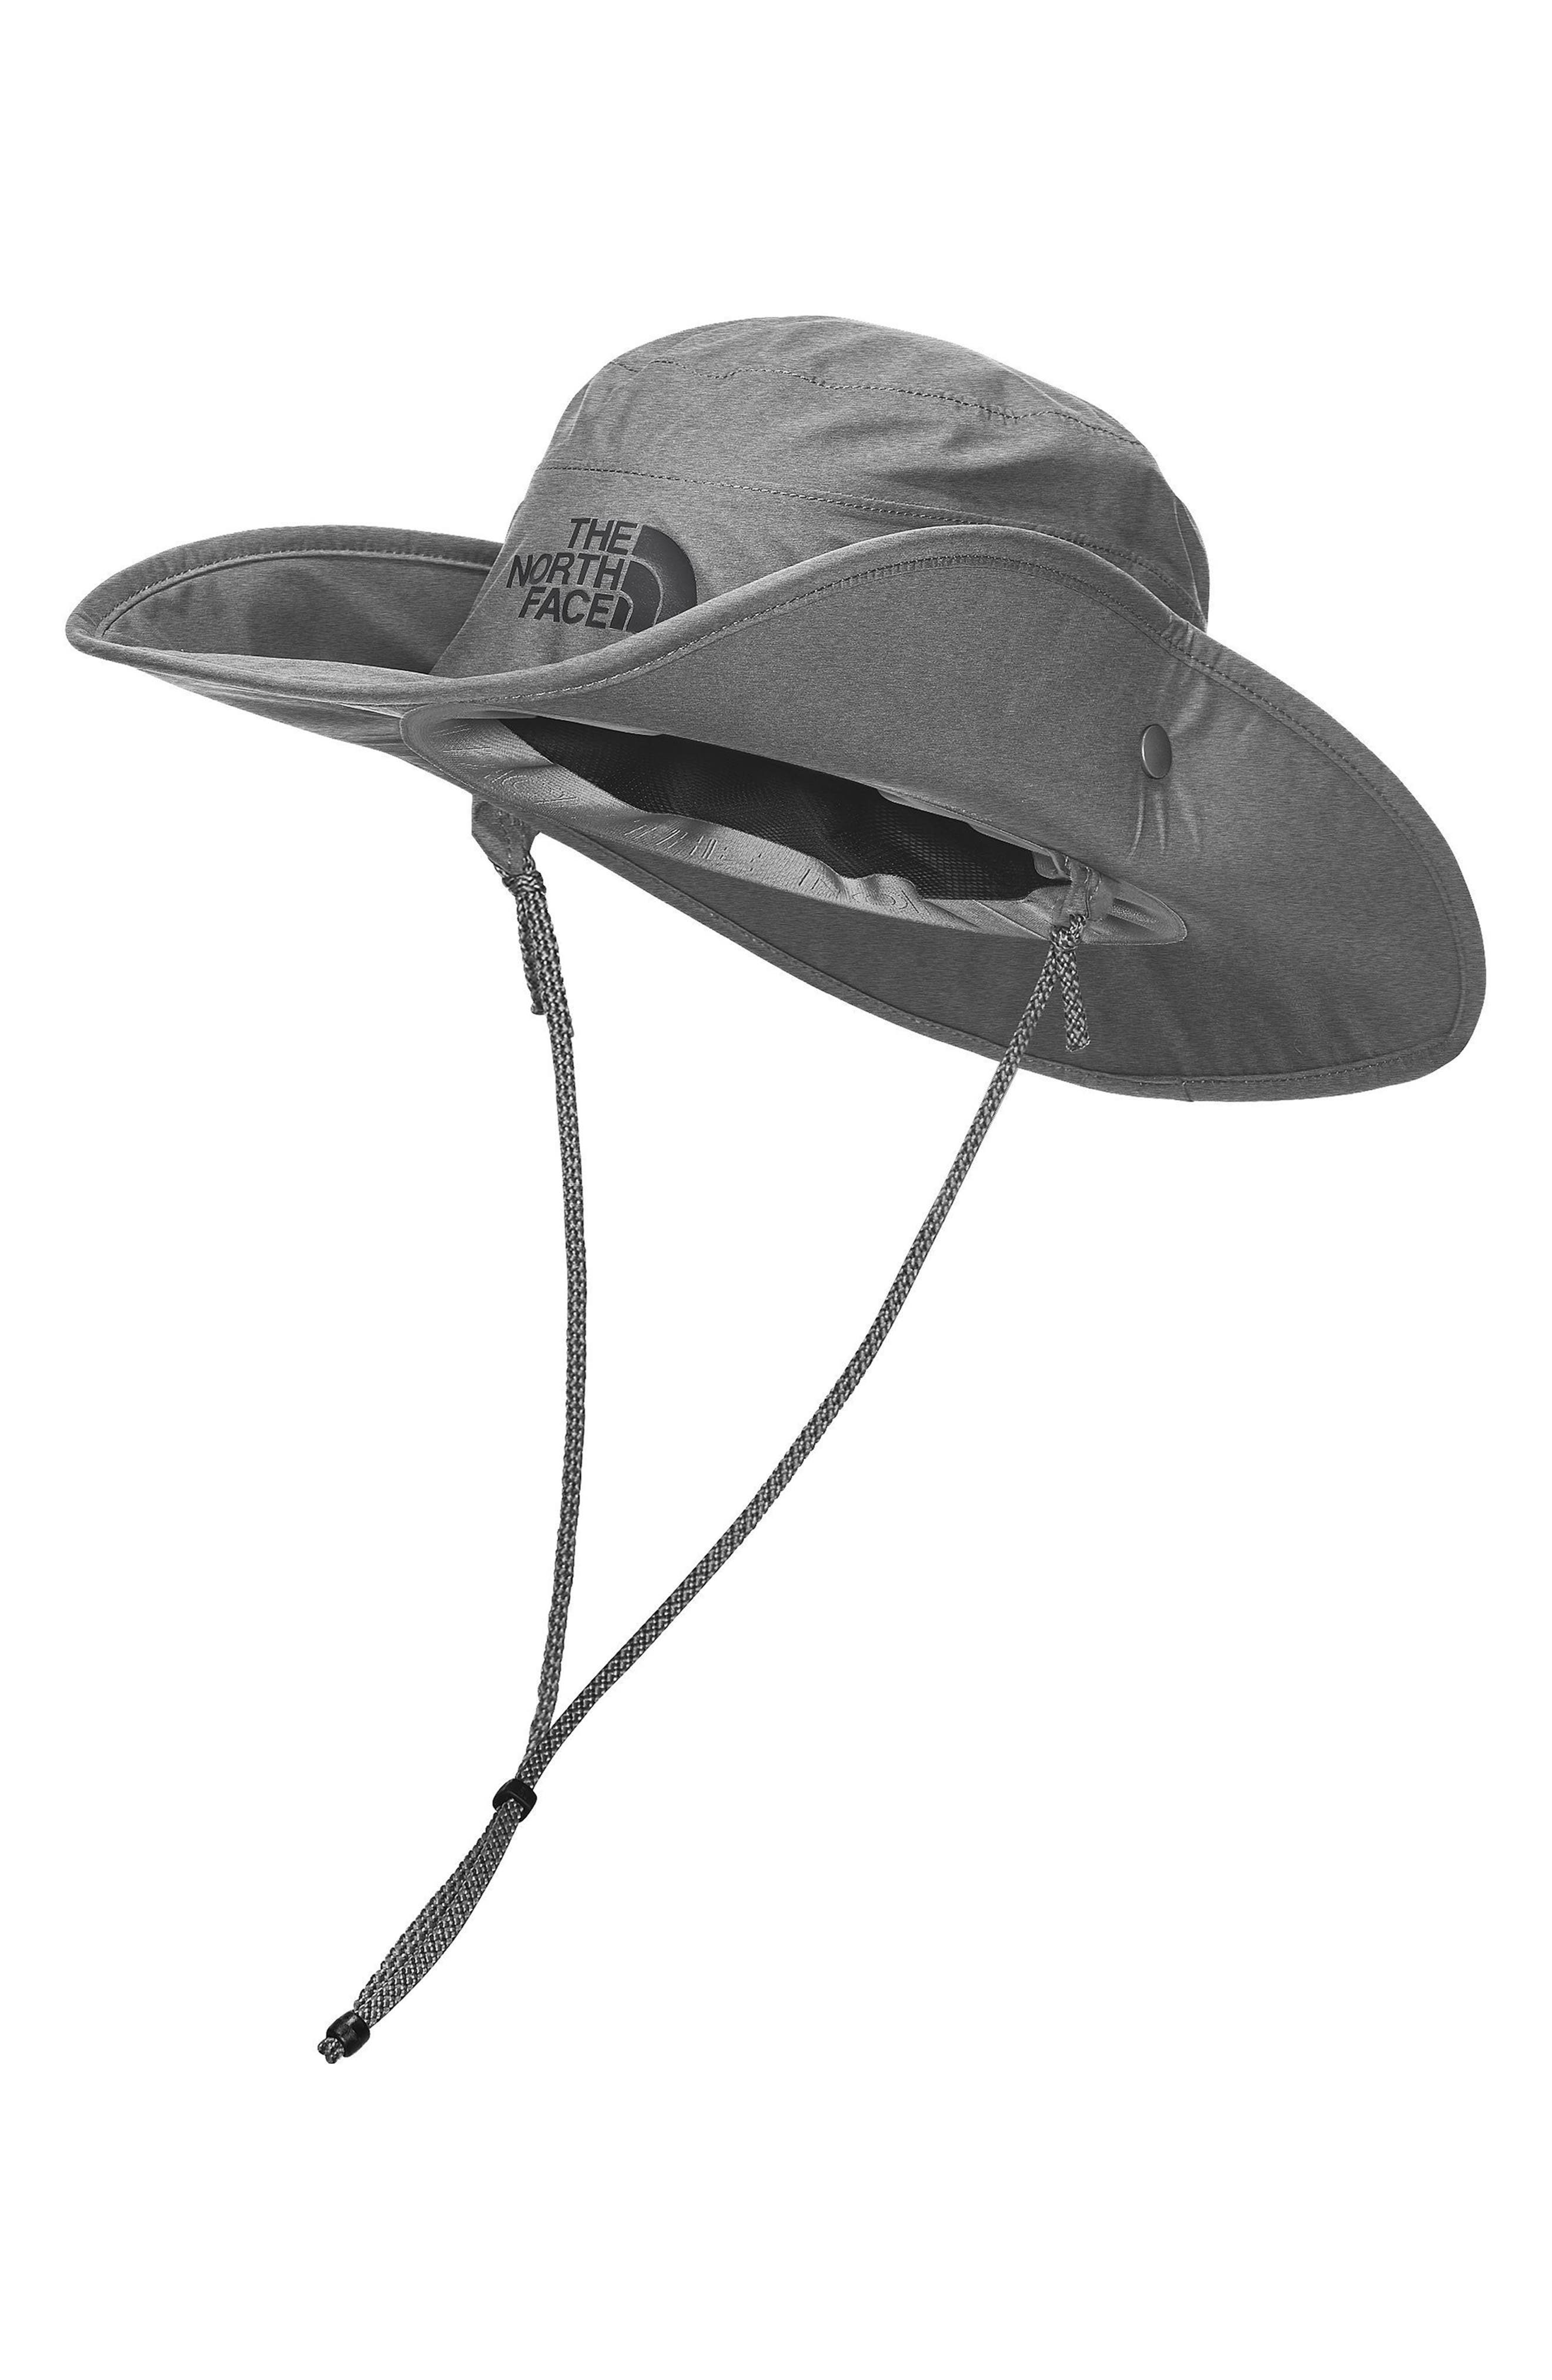 THE NORTH FACE,                             Gore-Tex<sup>®</sup> Hiker Hat,                             Main thumbnail 1, color,                             030